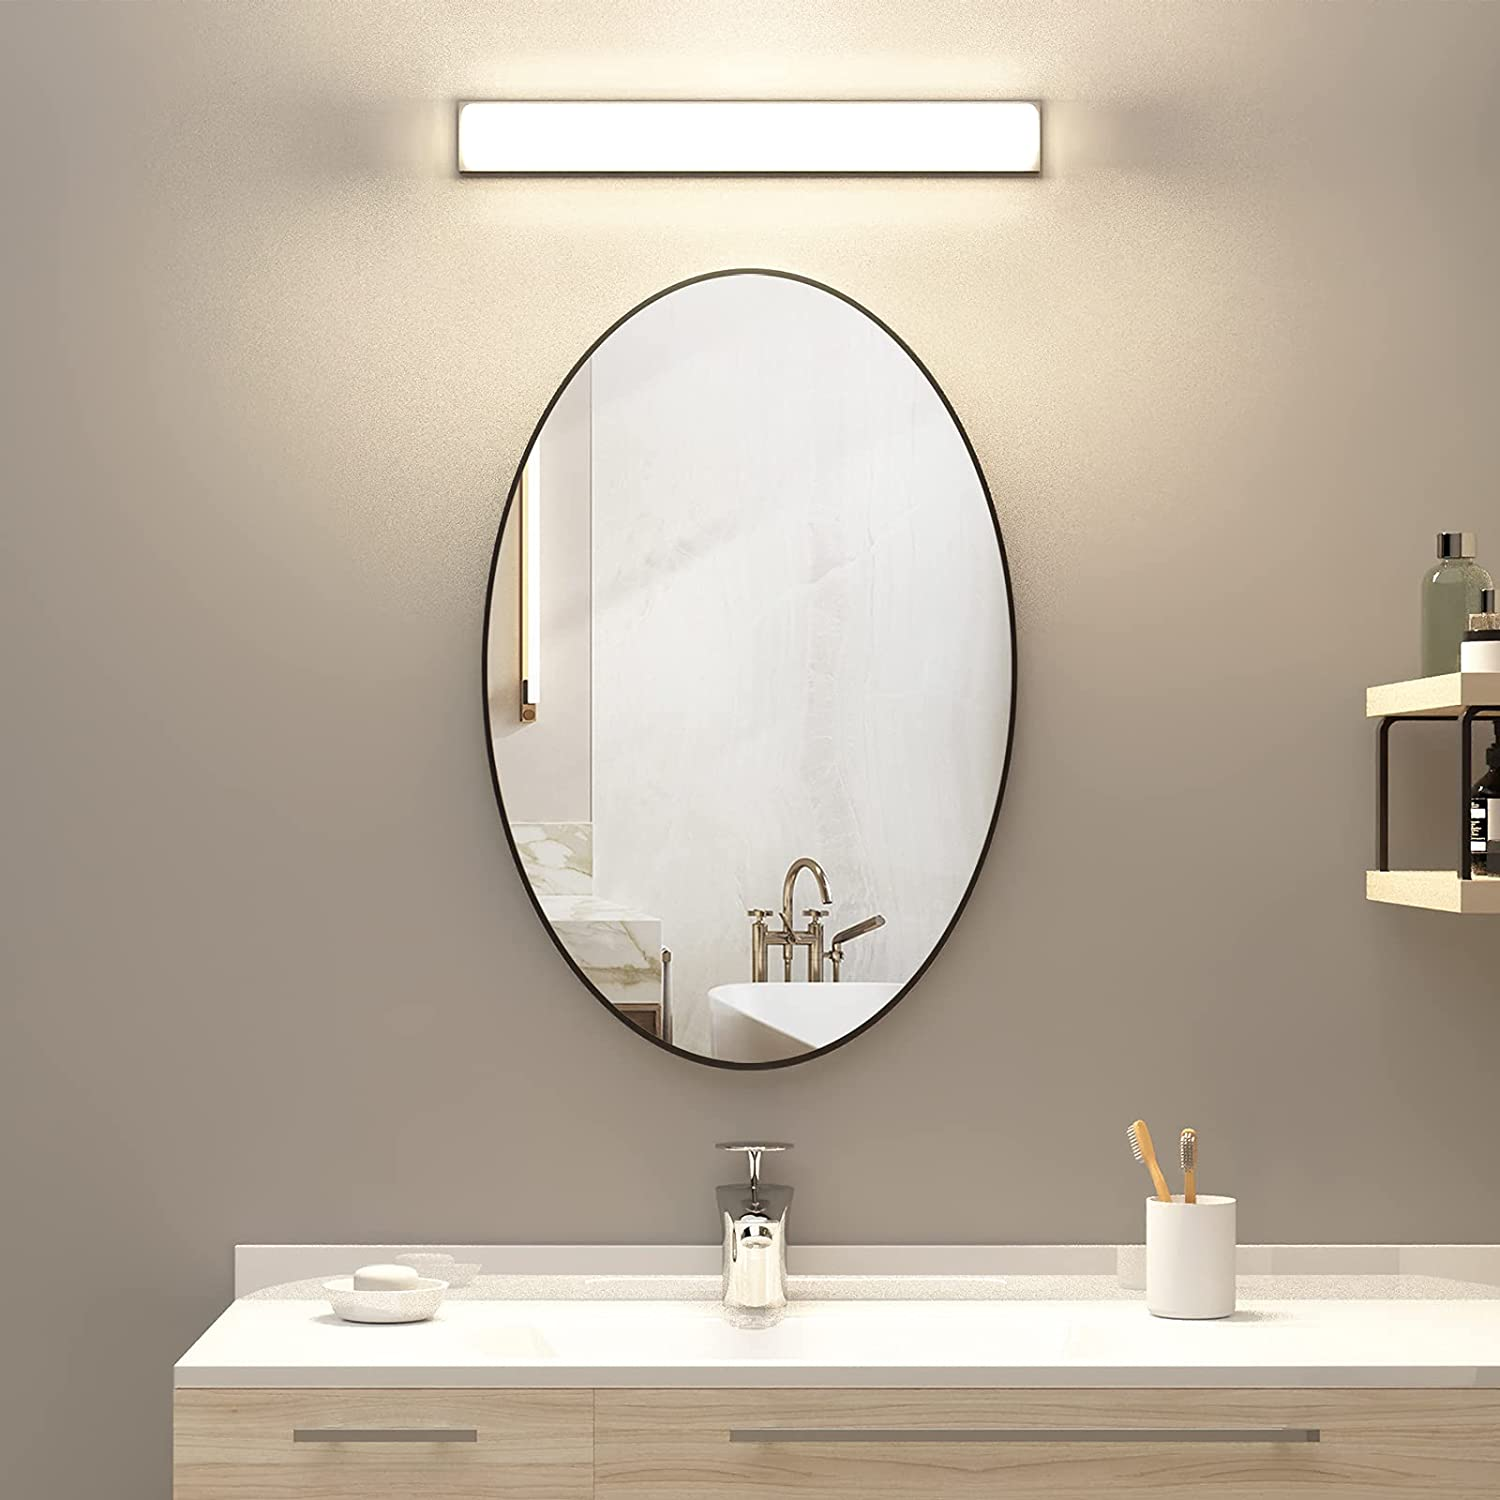 Buy Kaasunes Oval Wall Mirror With Coating Steel Frame 24 X 36 Inch Wall Mounted Bathroom Mirror Rusty Free For Home Decorative Living Room Washroom Entryway Hanging Online In Indonesia B07sm4whjp